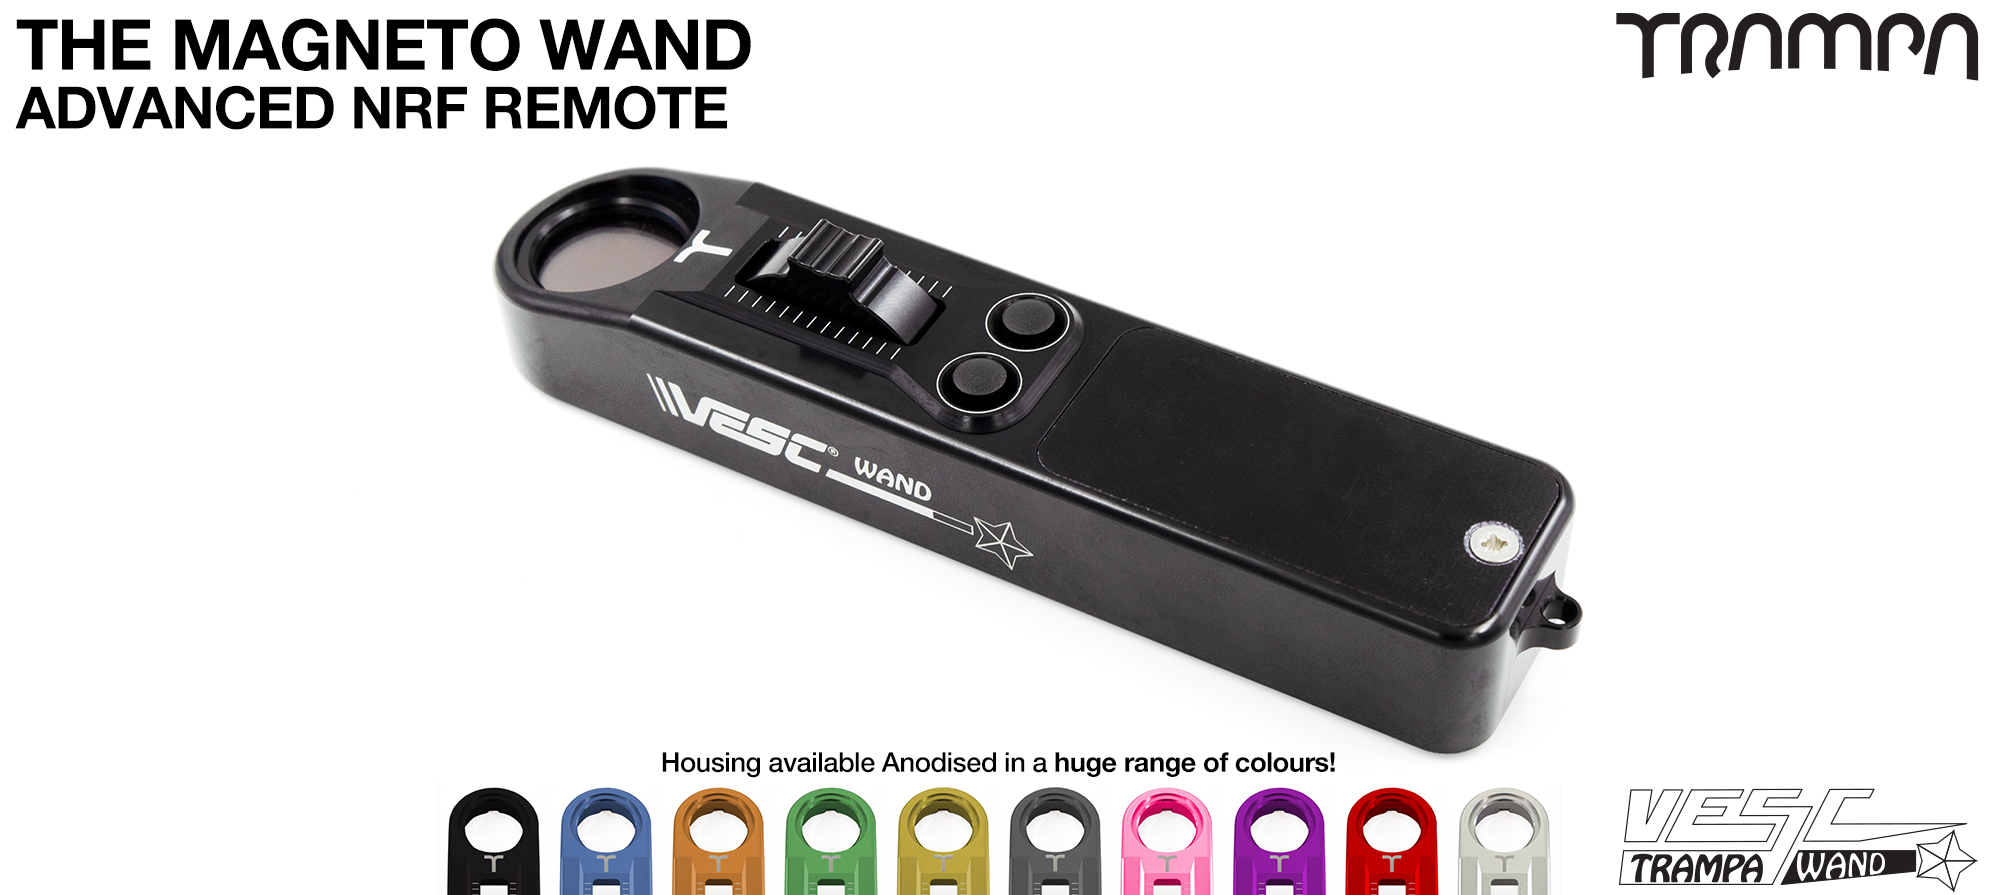 WAND Remote Control TRAMPA VESC Based design gives you all the data you could wish for on the fly